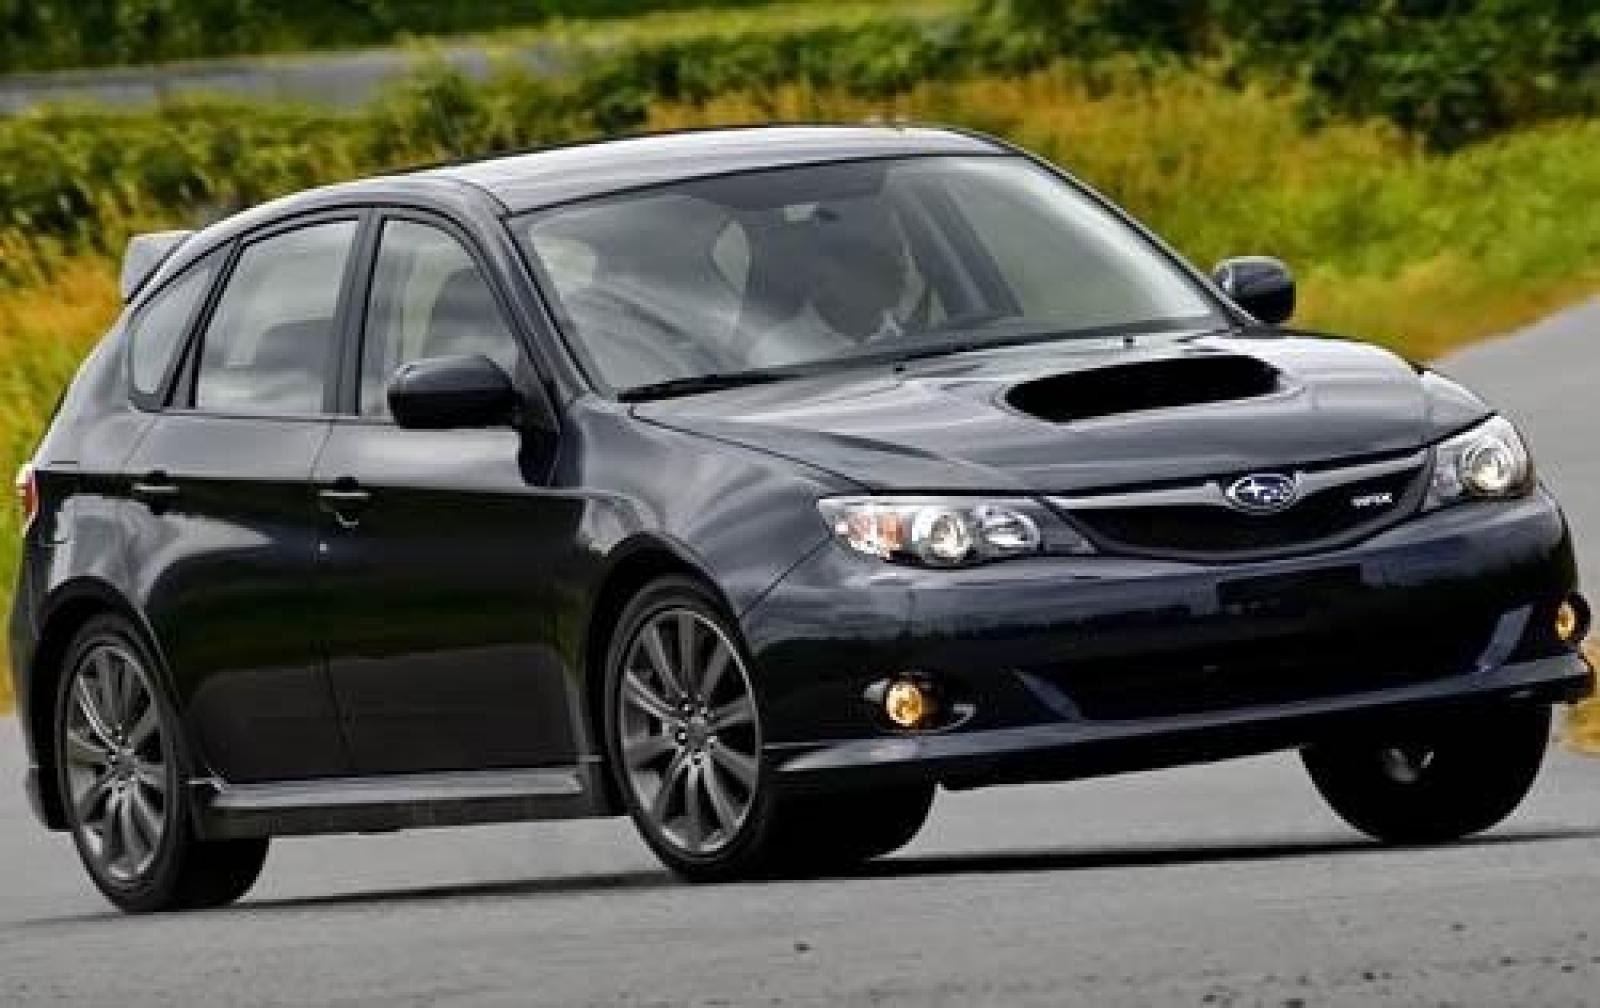 2010 subaru impreza information and photos zombiedrive. Black Bedroom Furniture Sets. Home Design Ideas